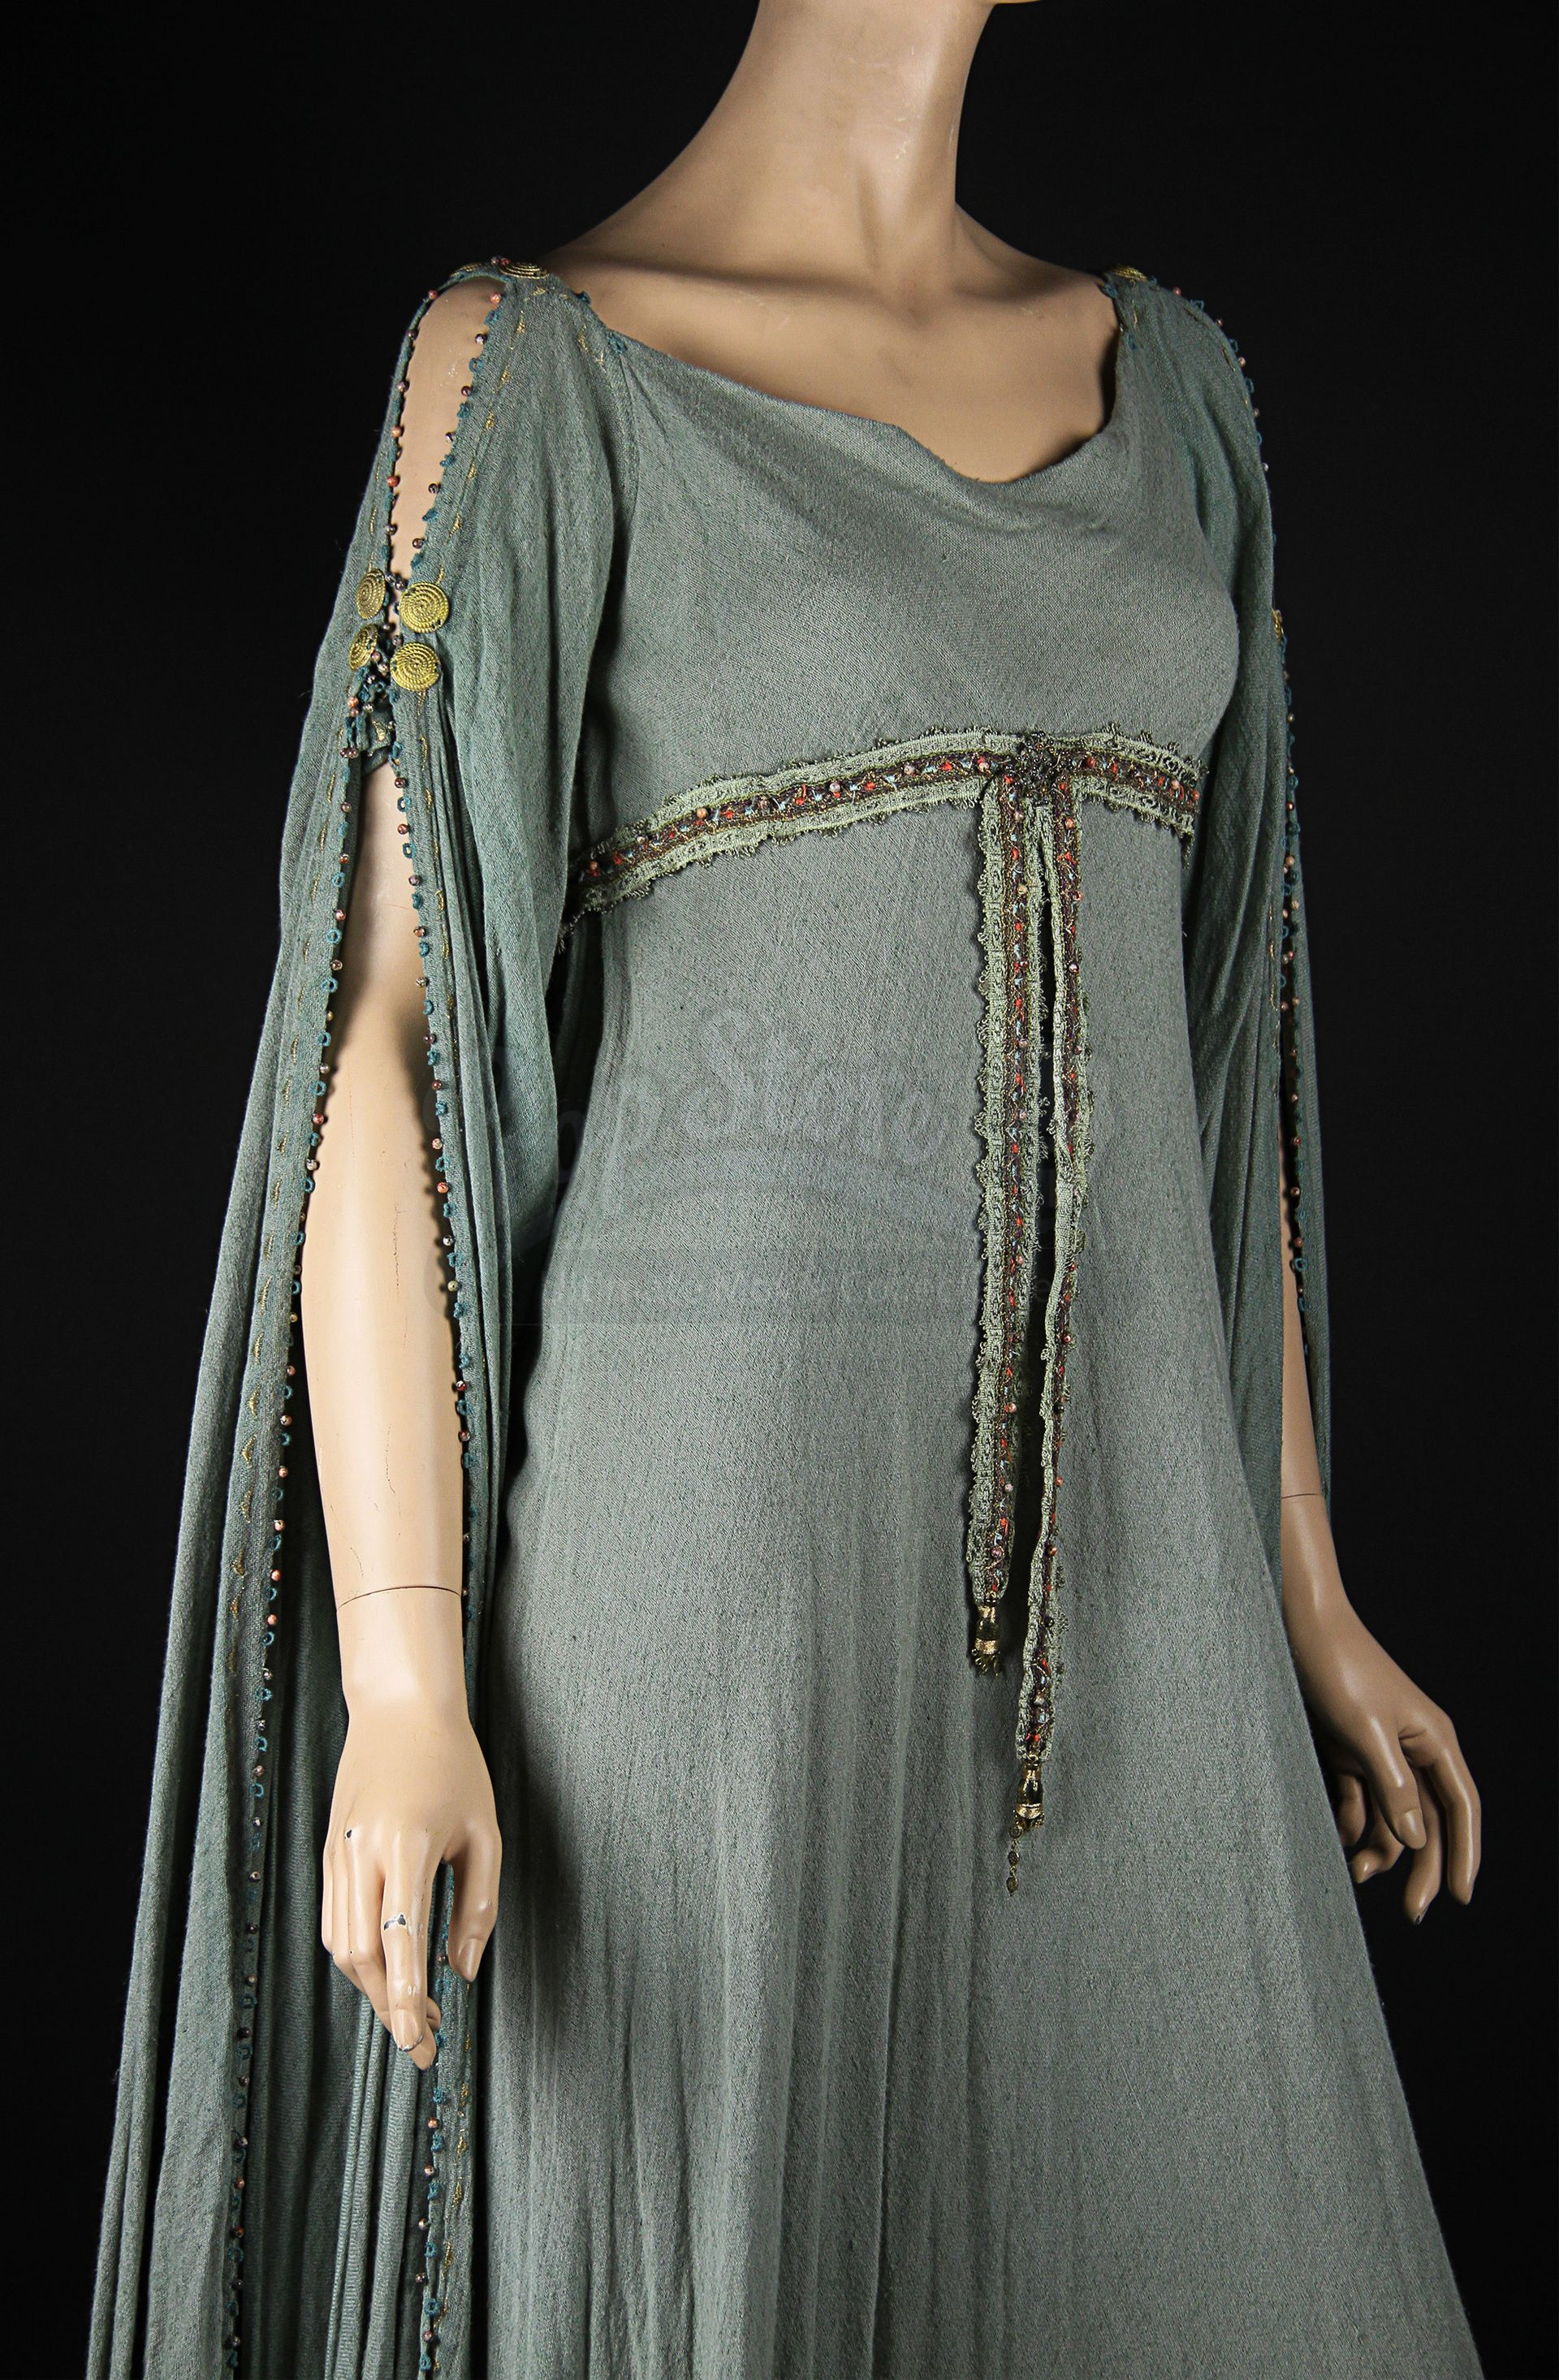 Guinevere (Keira Knightley) Blue Dress | Prop Store - Ultimate Movie ...